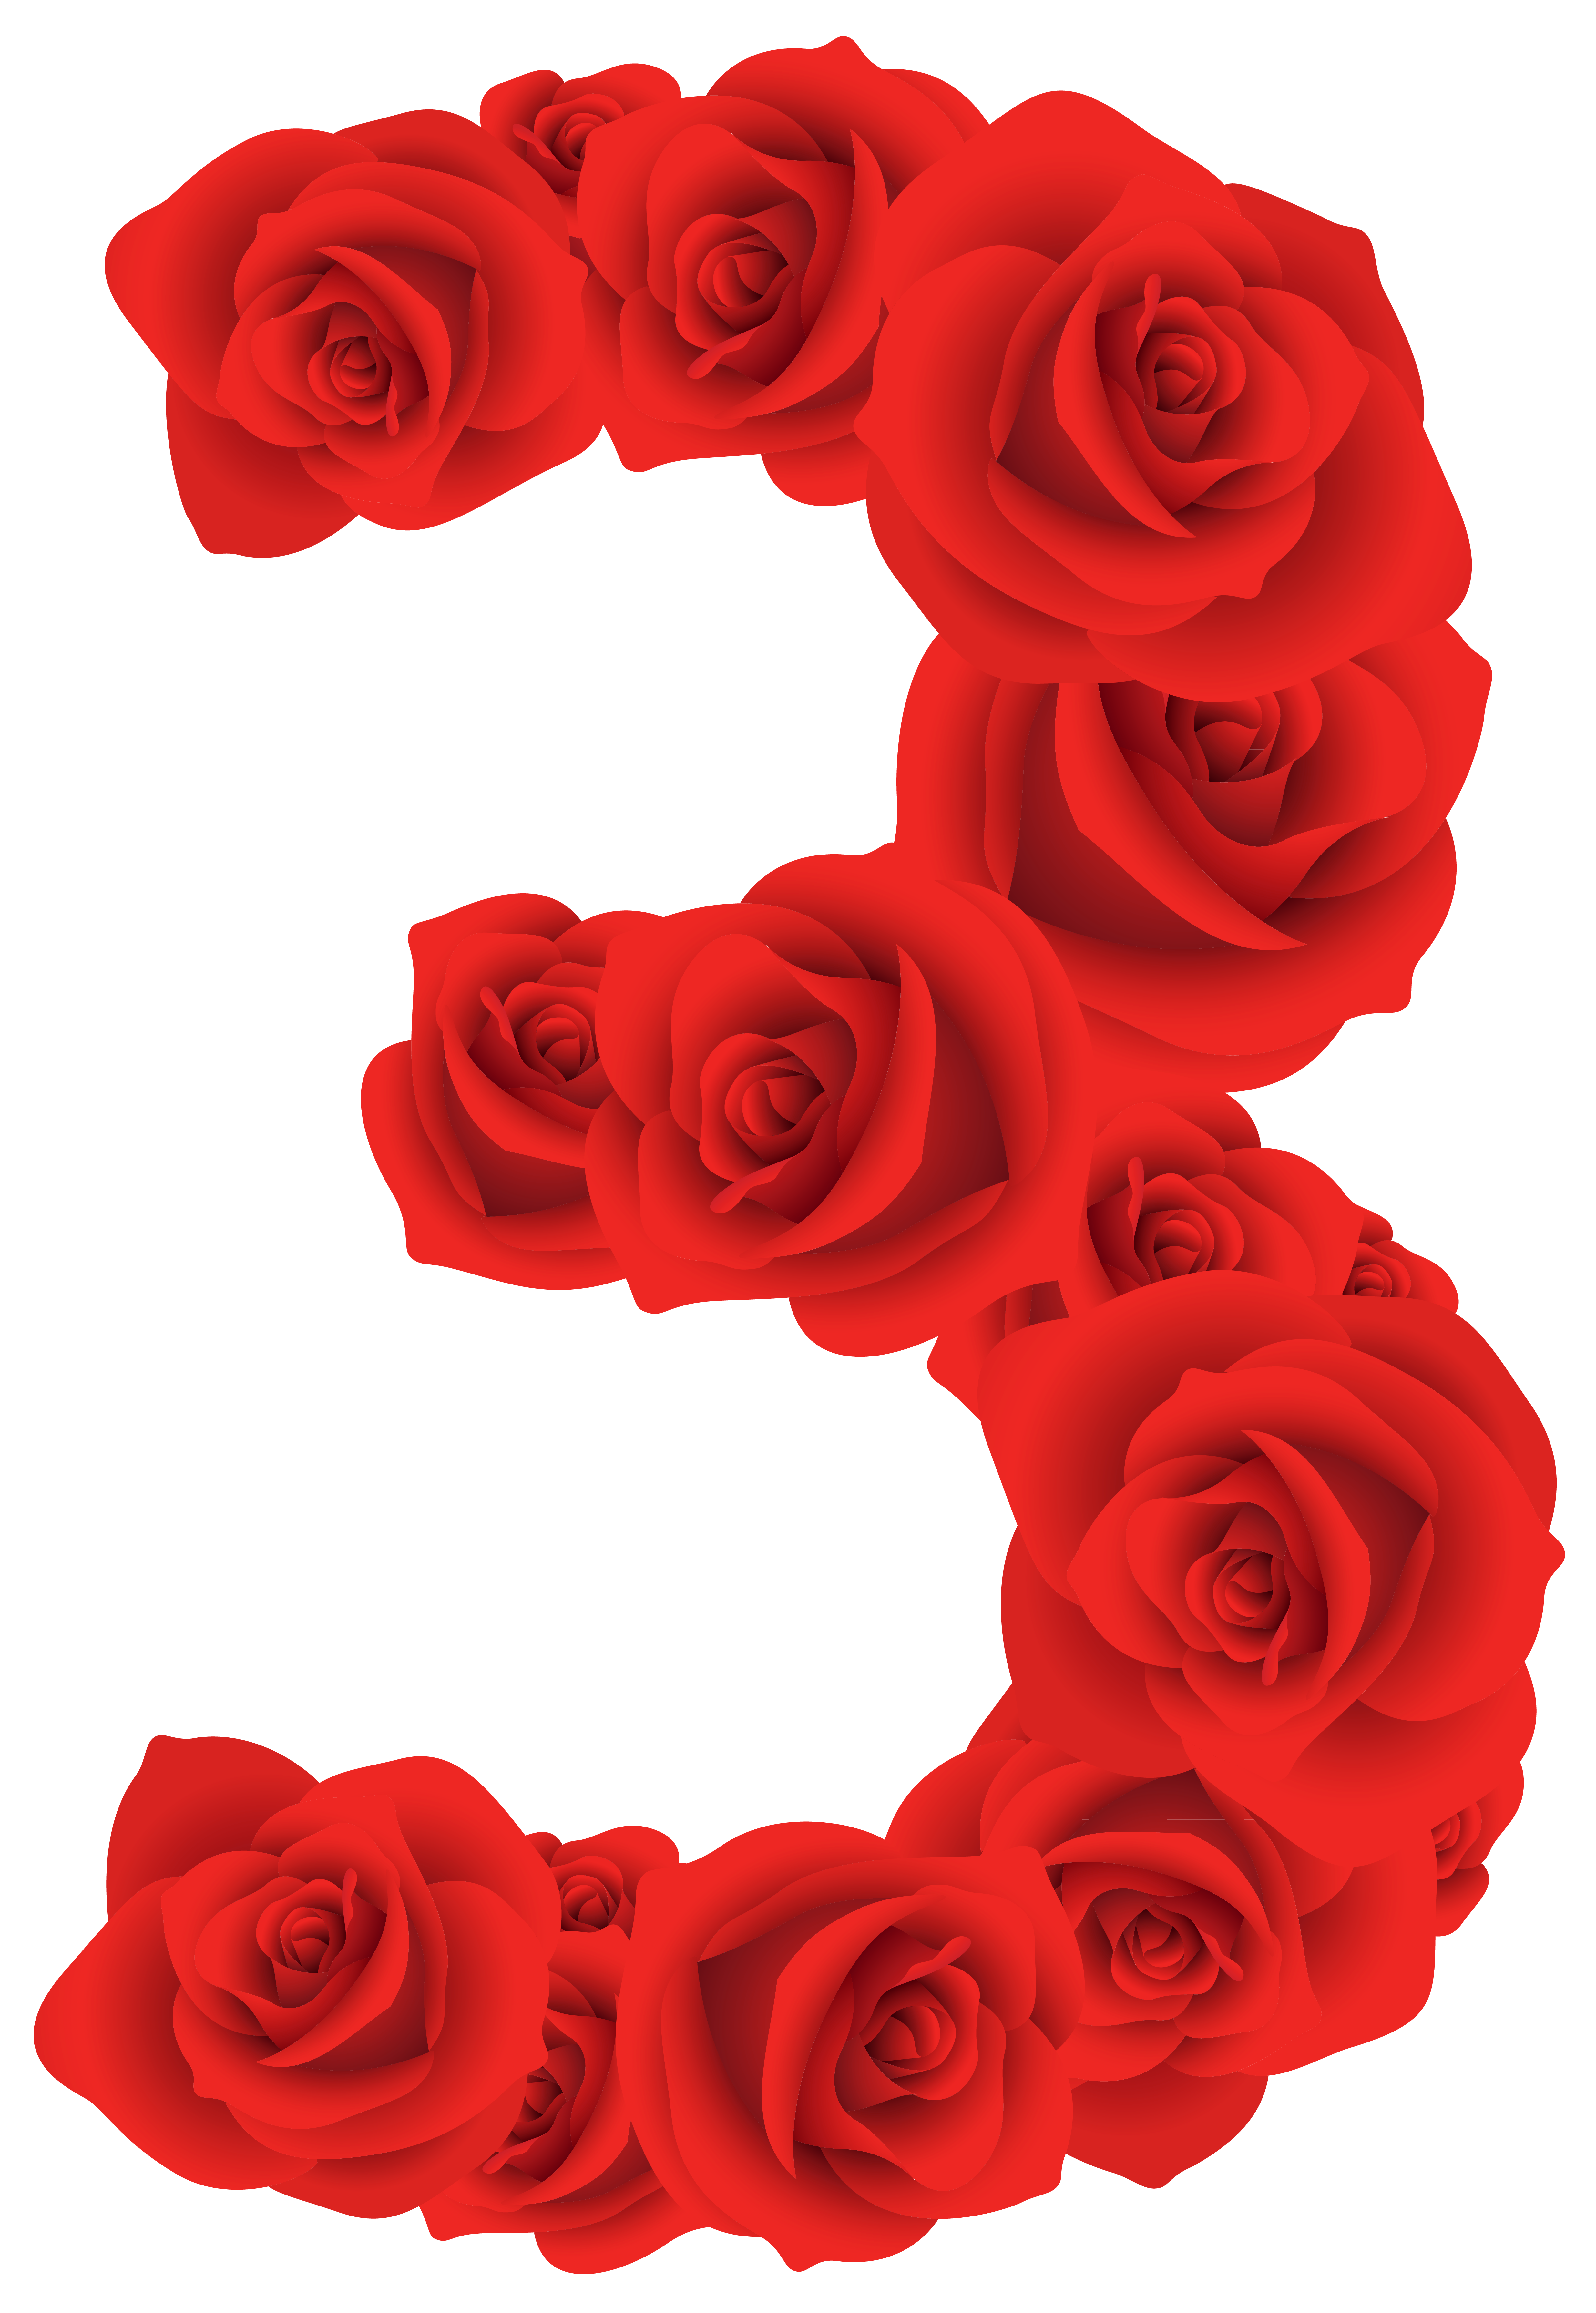 3 clipart rose. Red roses number three